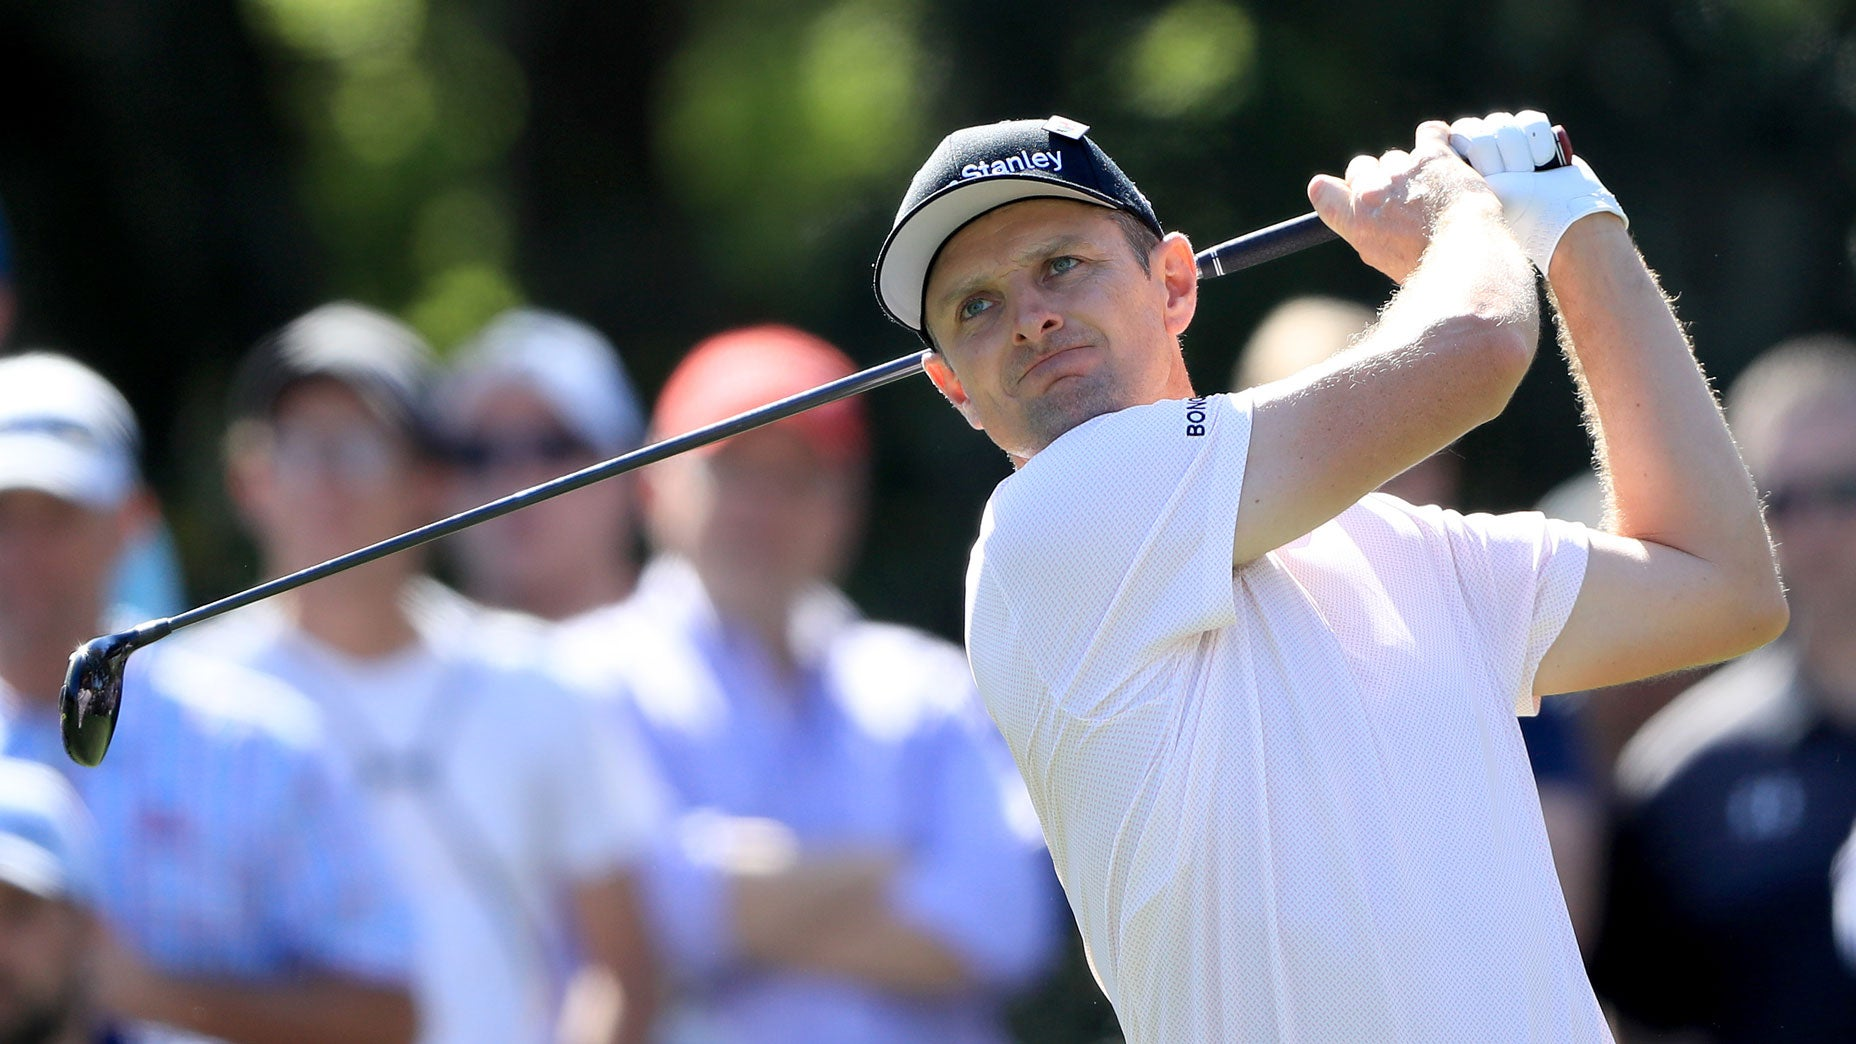 Justin Rose hits a tee shot during the Players Championship.